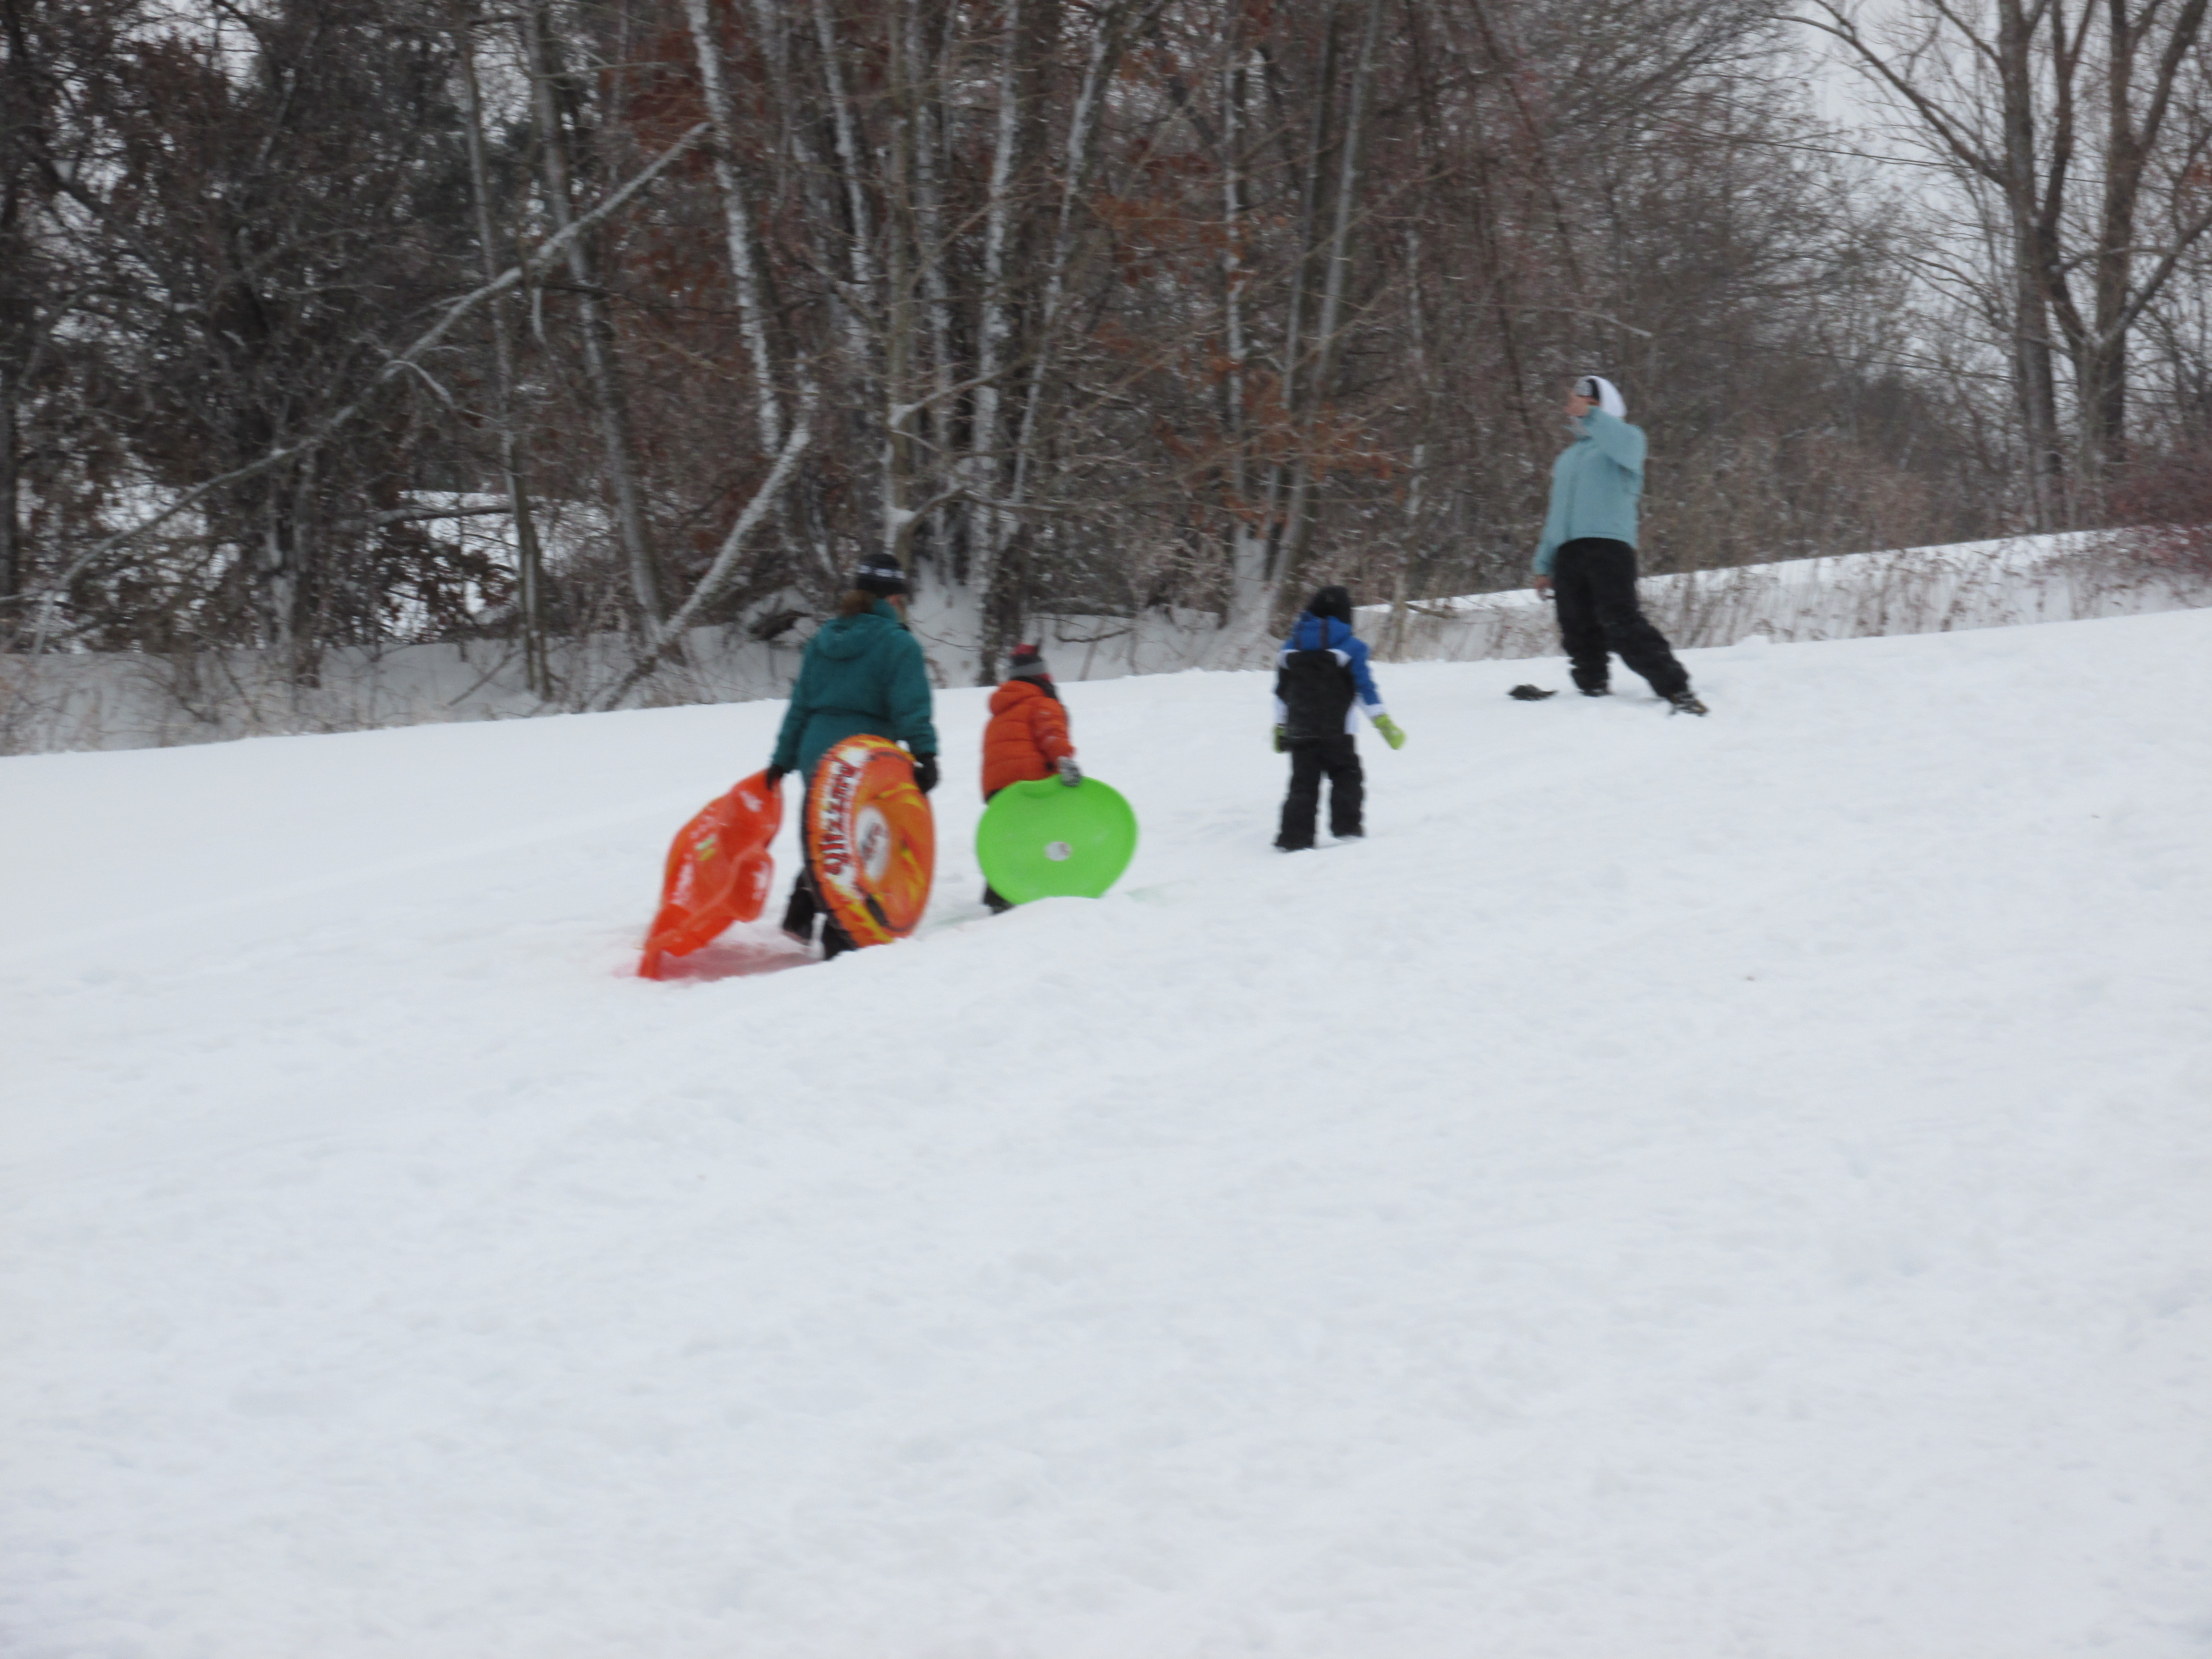 The Cold Weather Burn Calories And Winter Activities Brain4rent S Blog